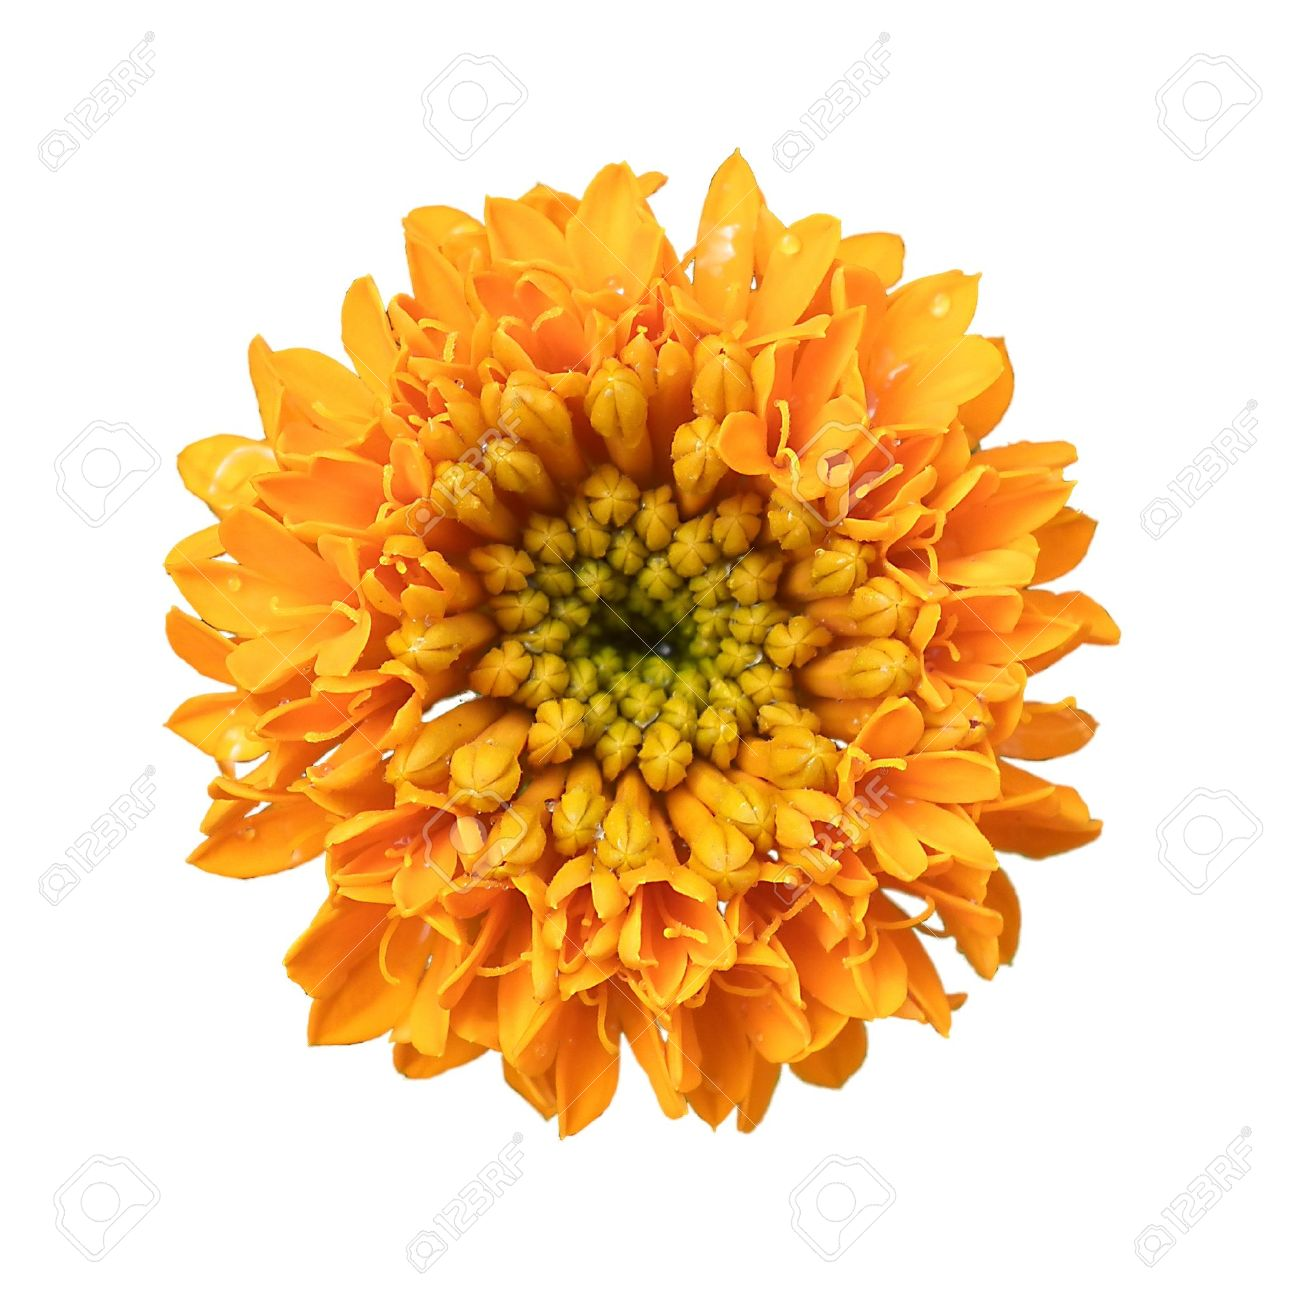 Marigold flowers are large on a white background stock photo marigold flowers are large on a white background stock photo 11575779 mightylinksfo